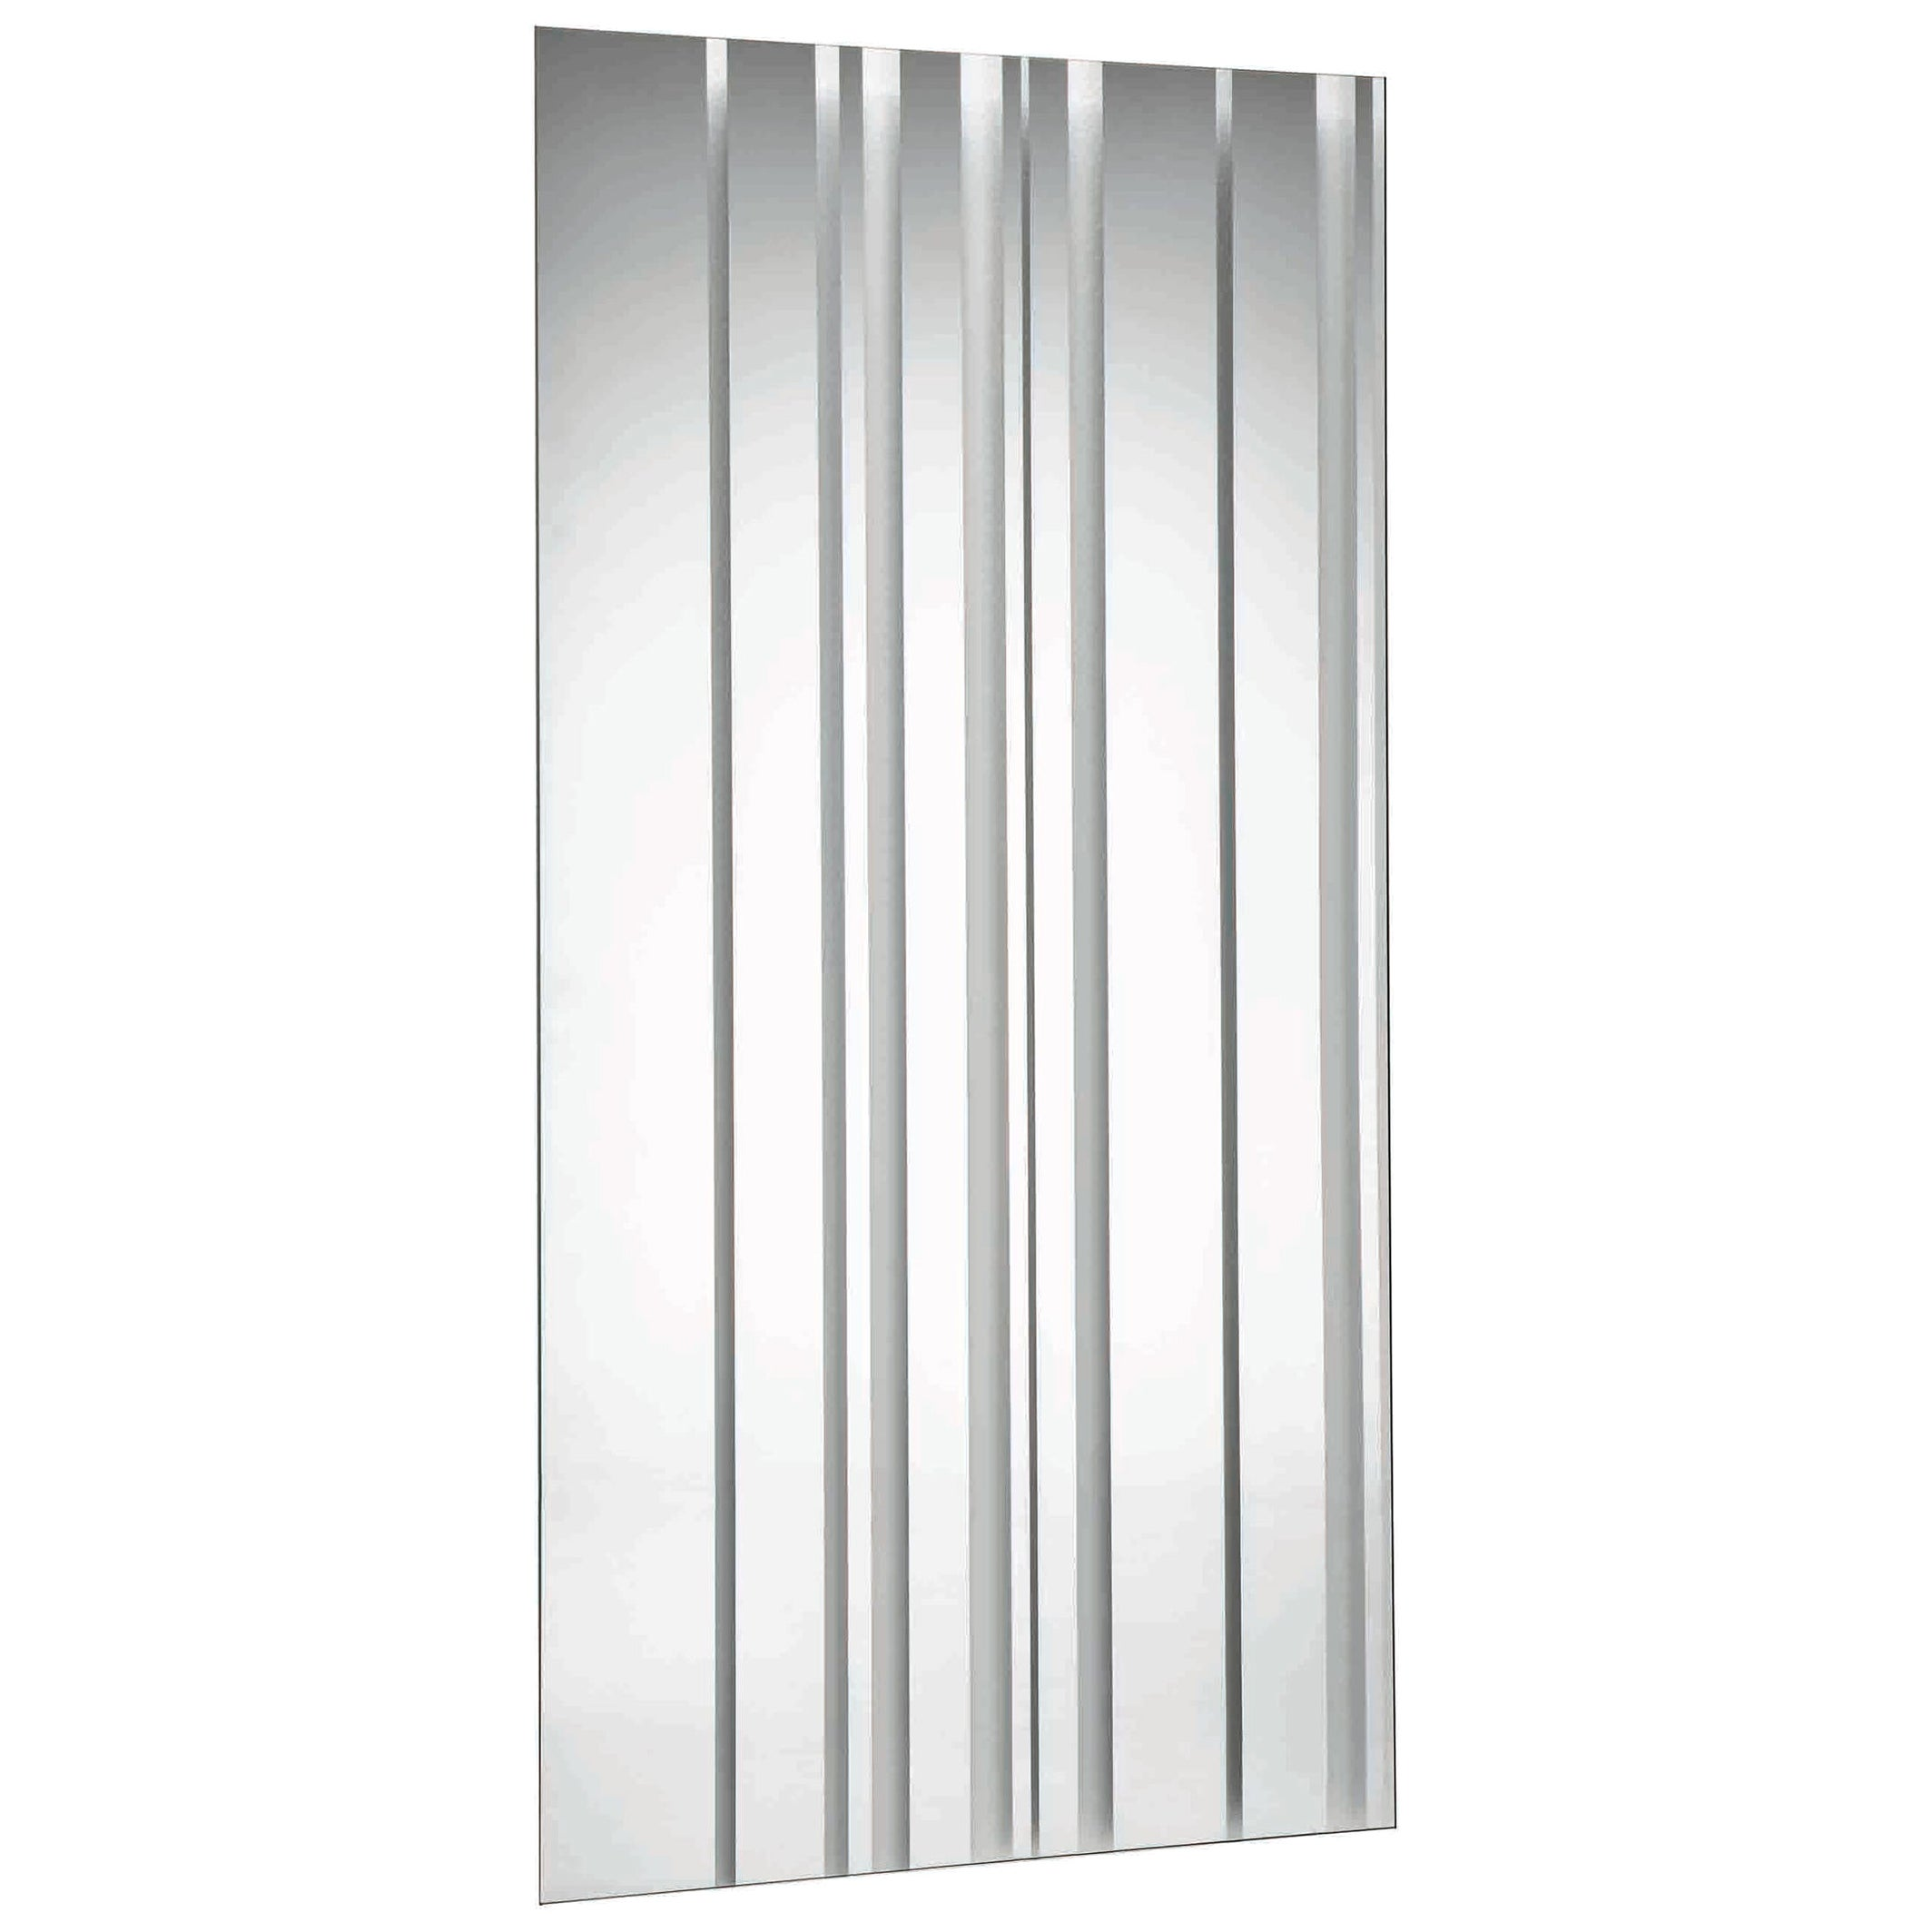 Barcode Wall Mirror, Designed by Giuseppe Maurizio Scutellà, Made in Italy